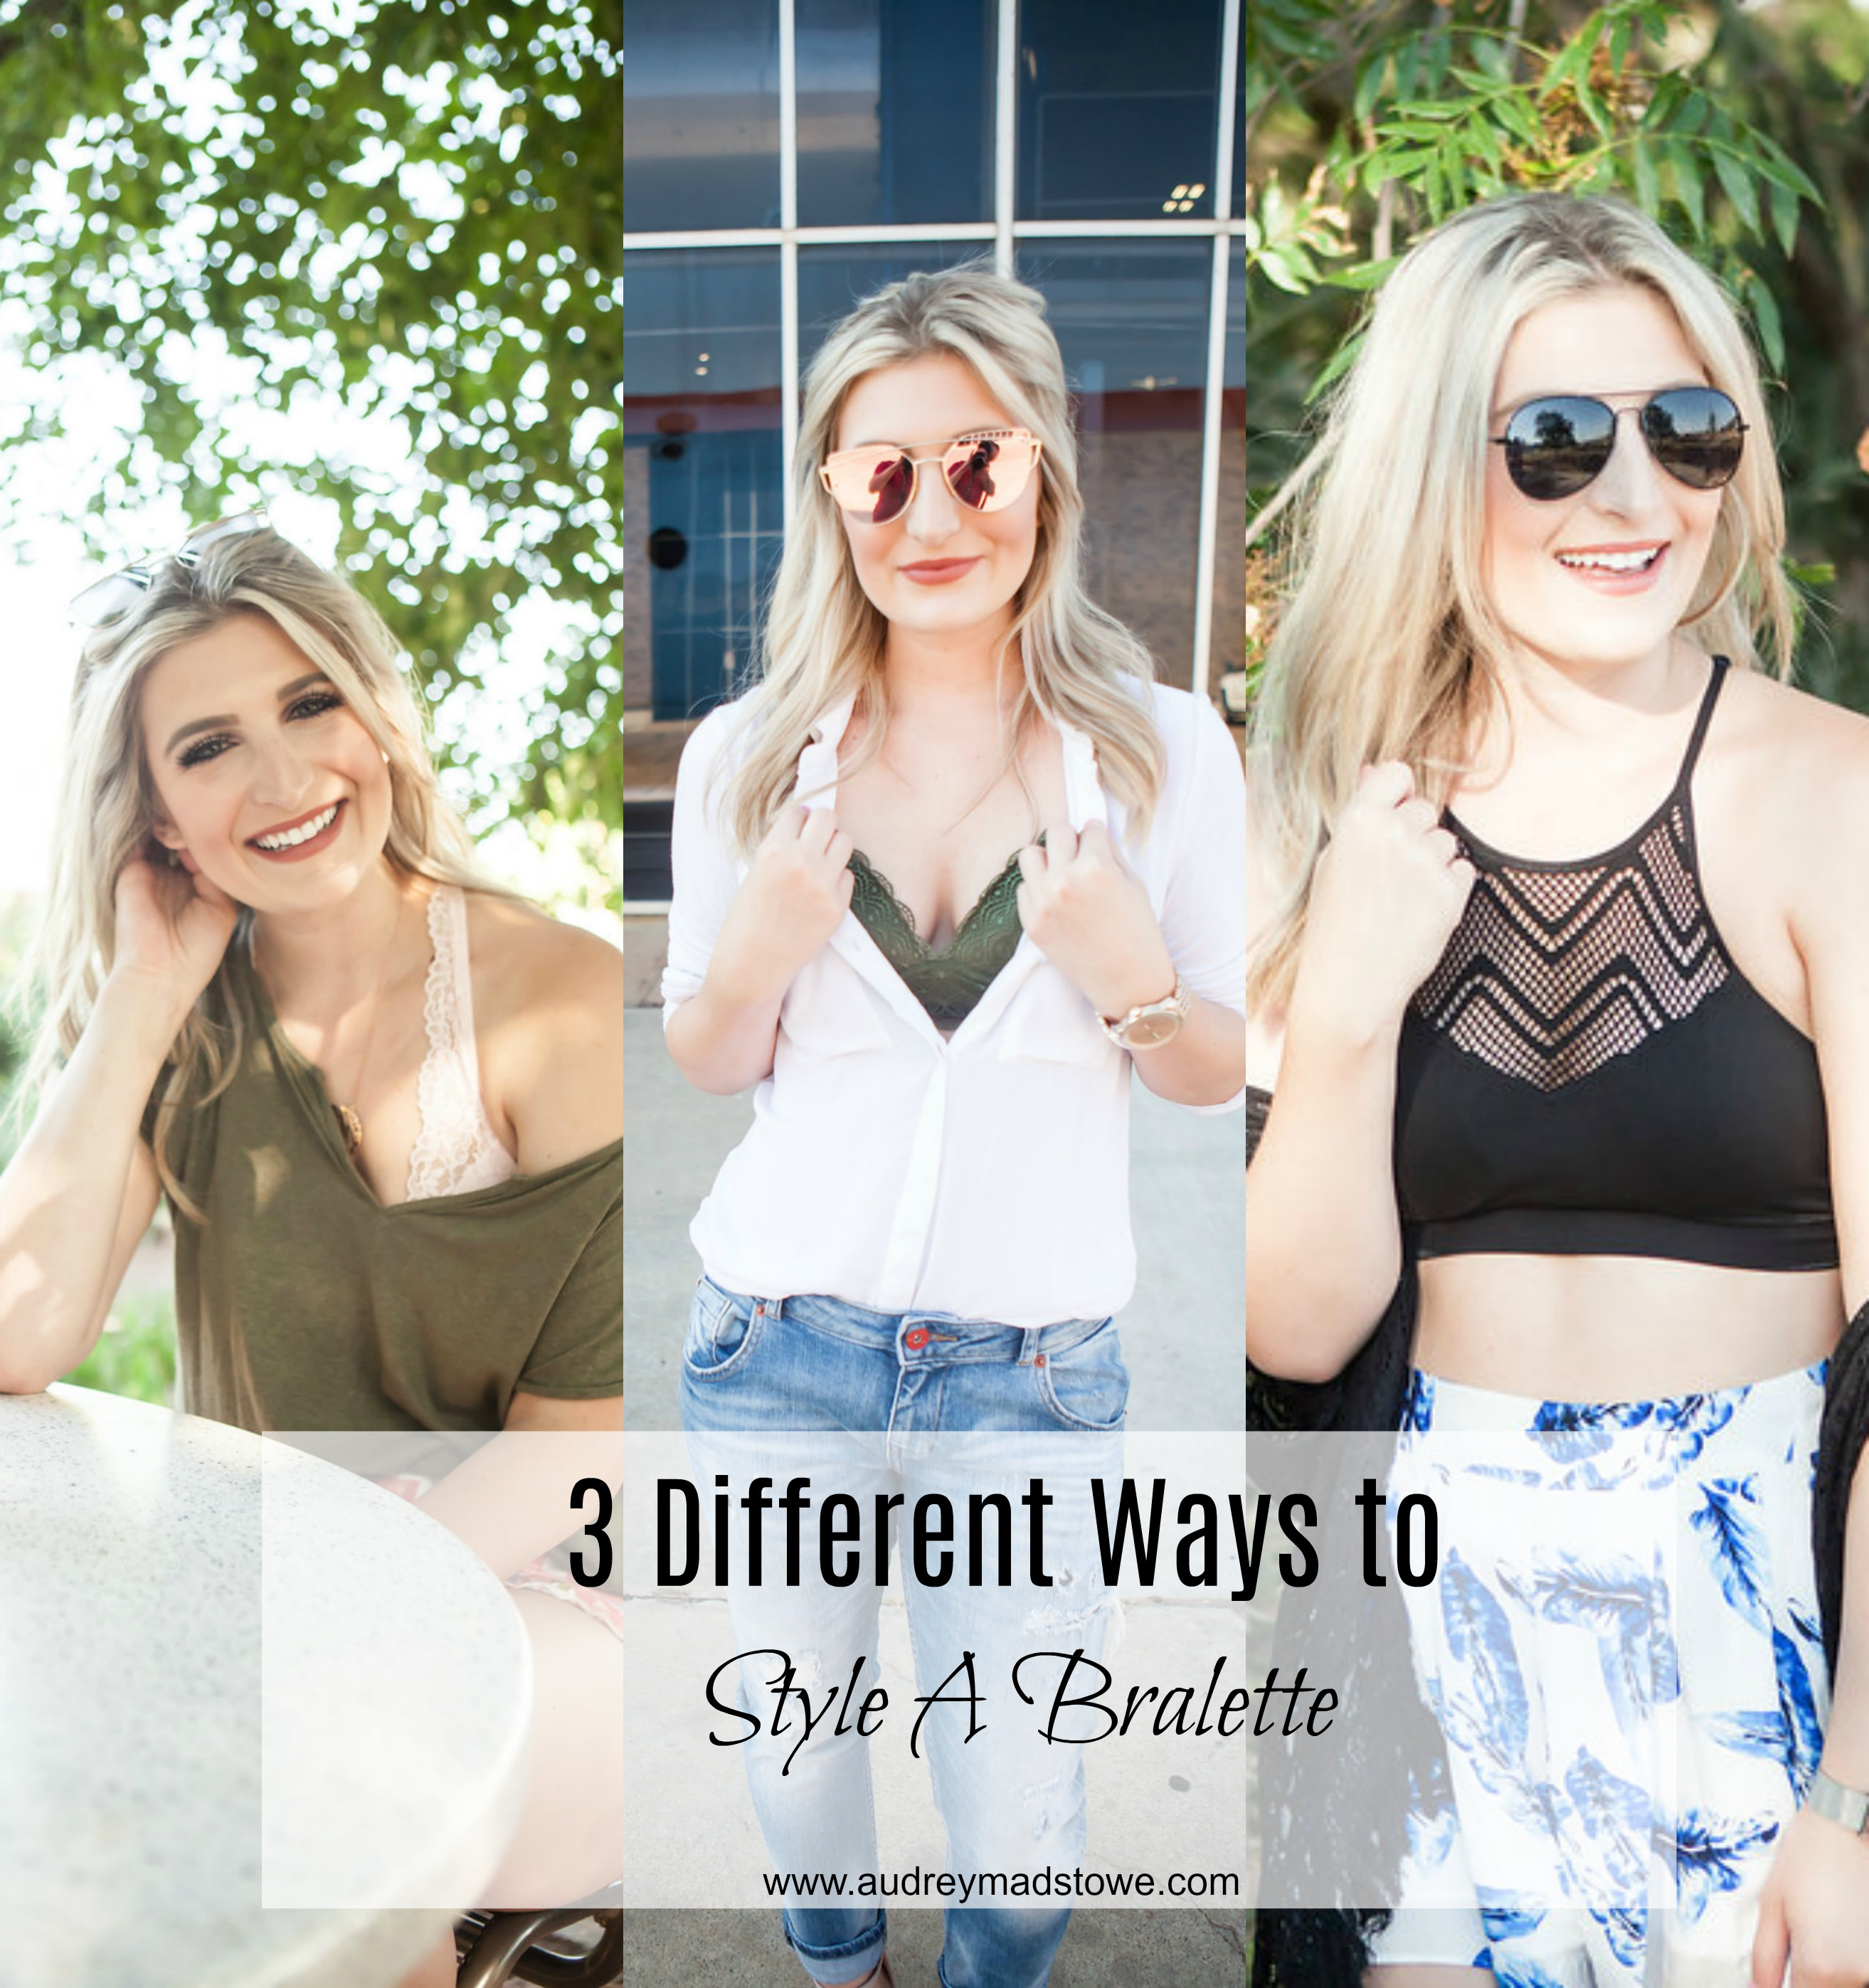 fca46eee2a7c12 3 Ways to Style A Bralette with Kohls